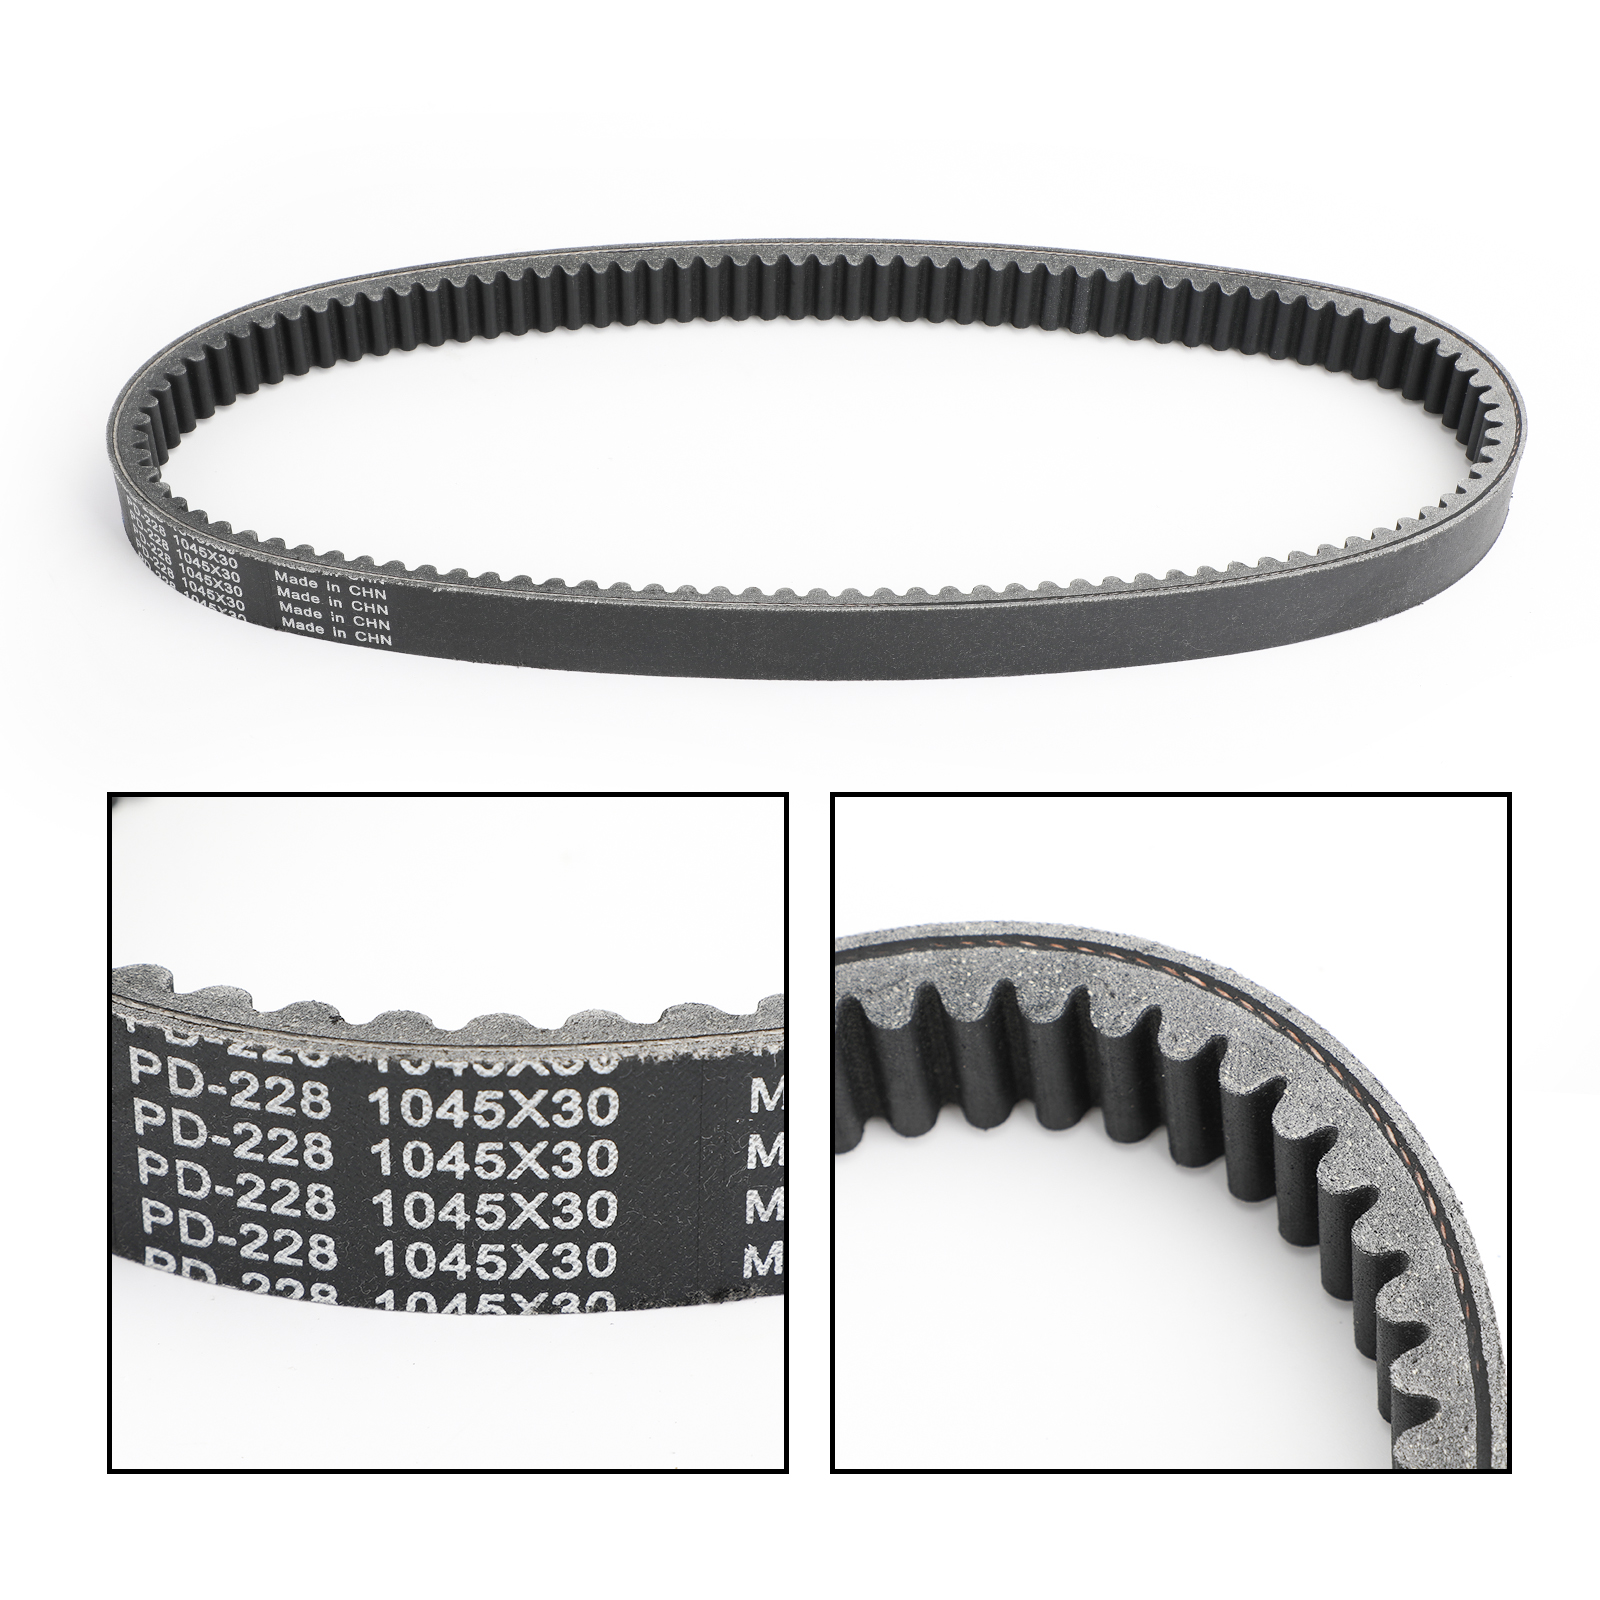 Artudatech Drive Belt 3211077 For Polaris Scrambler Ranger 400 500 4X4 Sportsman 335 Xplorer 300